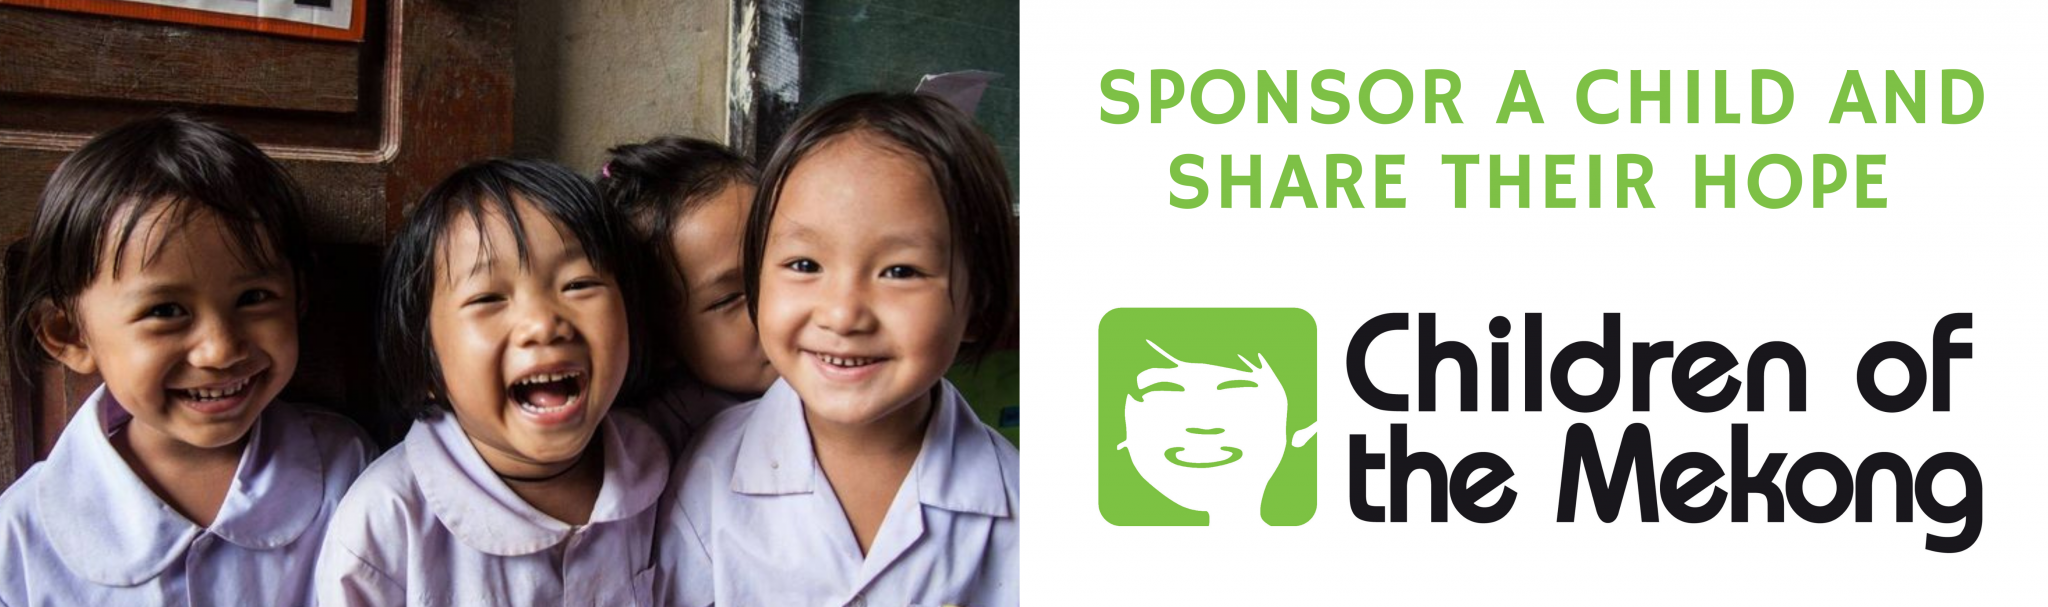 Sponsor a child and share their hope